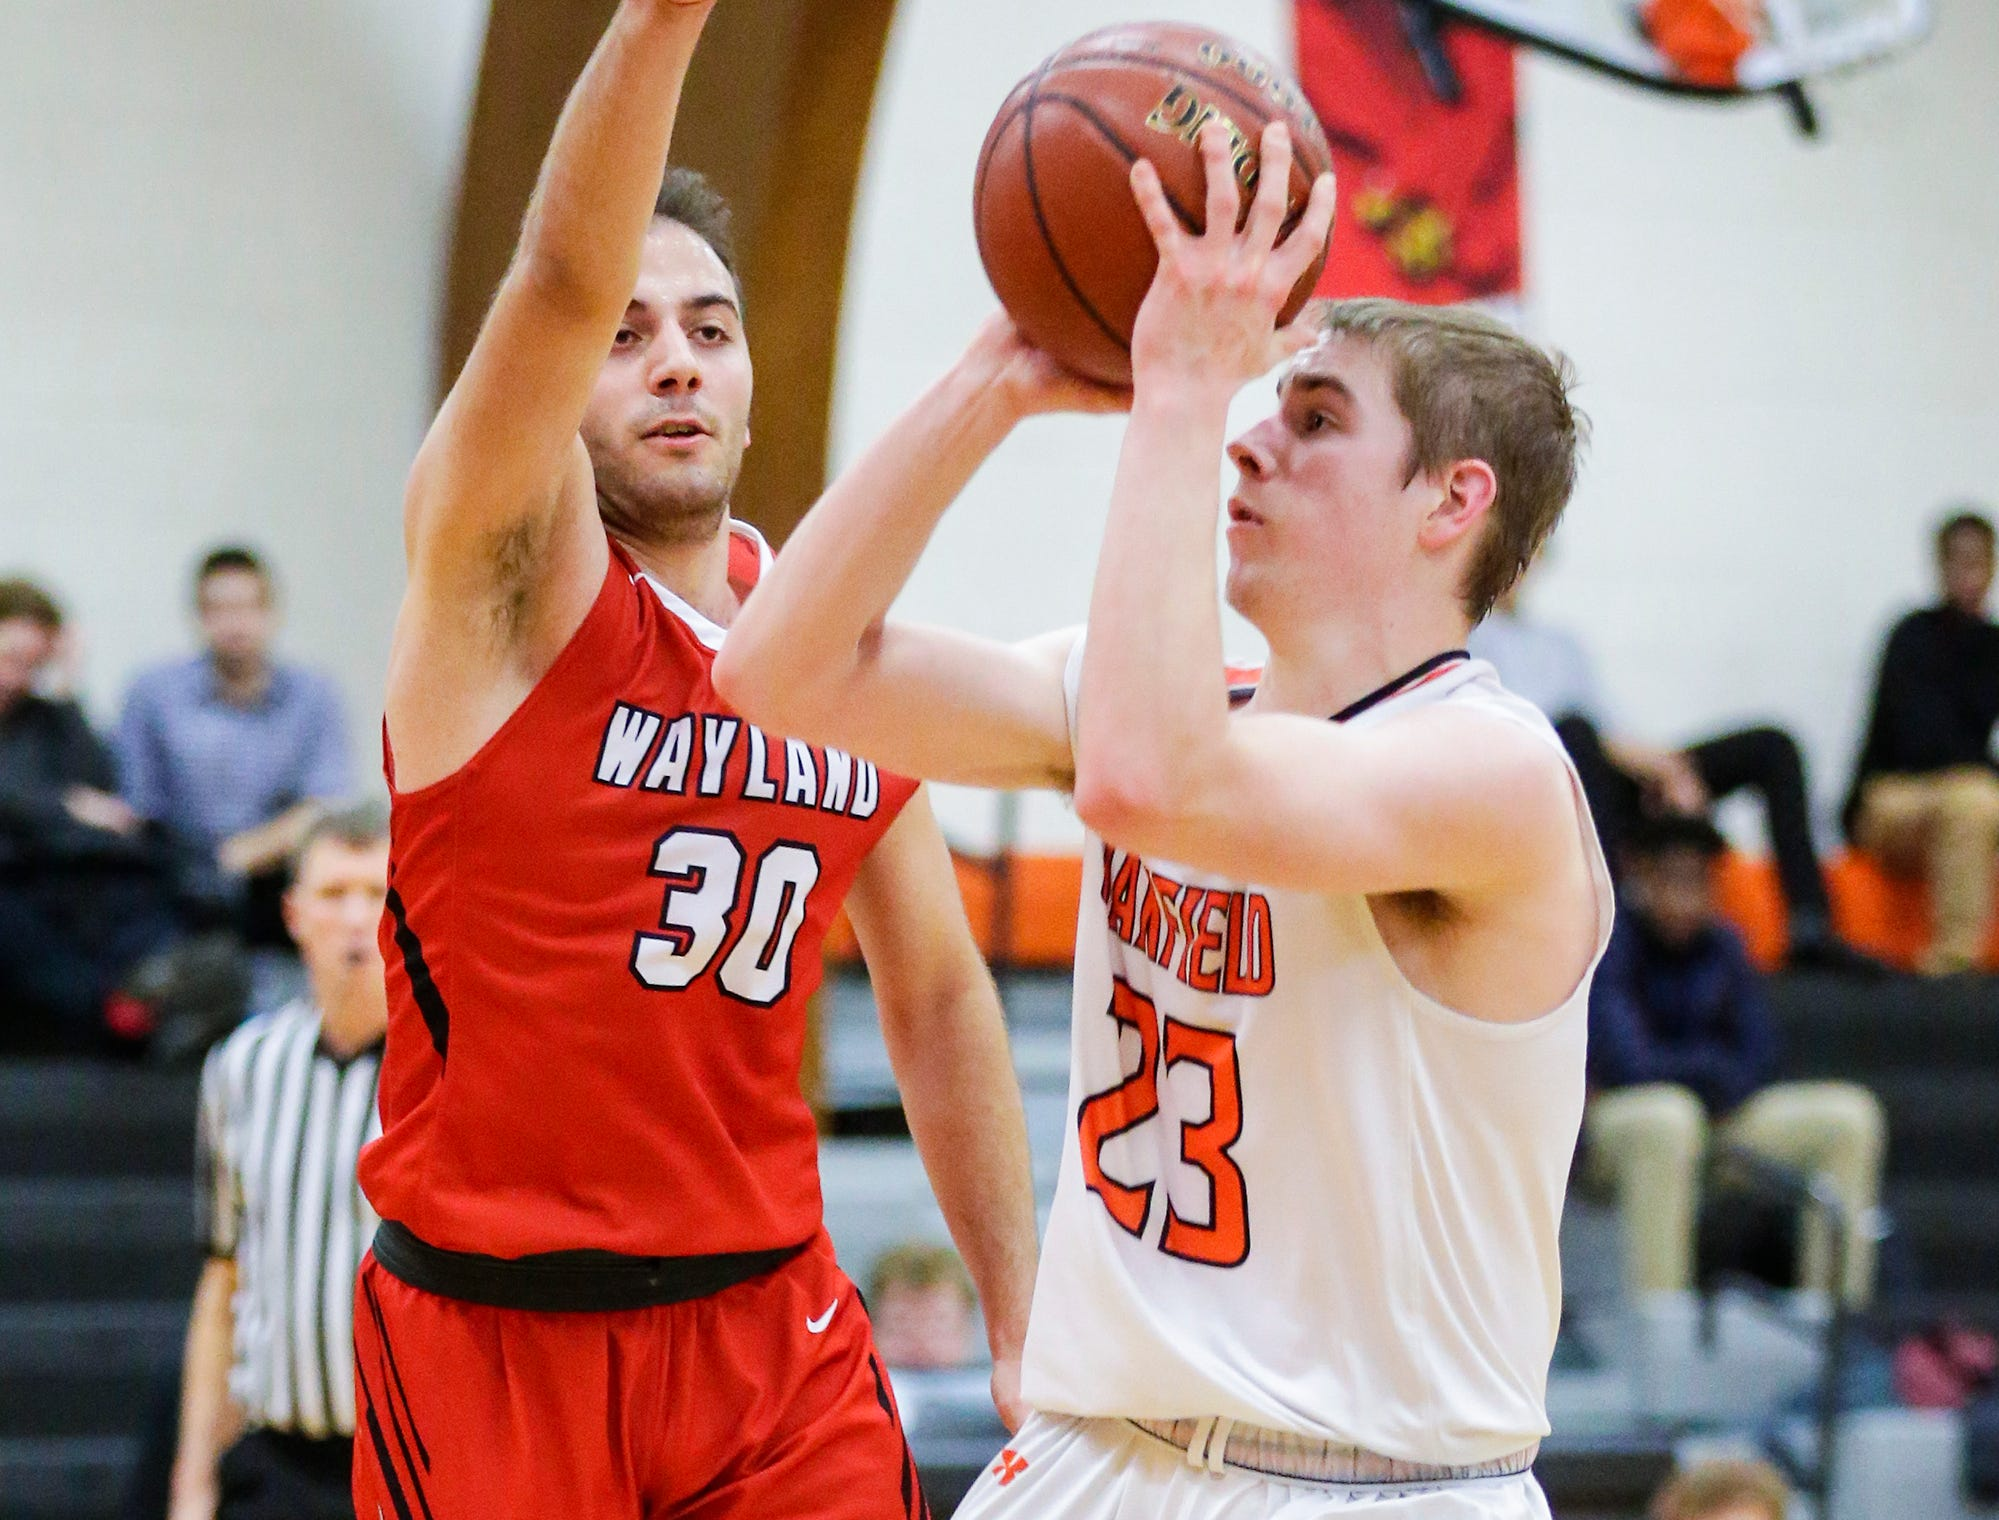 Oakfield High School boys basketball's Max Margelofsky makes this shot against Wayland Academy's Kerem Kocer January 11, 2019 during their game in Oakfield. Oakfield won the game 56-48. Doug Raflik/USA TODAY NETWORK-Wisconsin